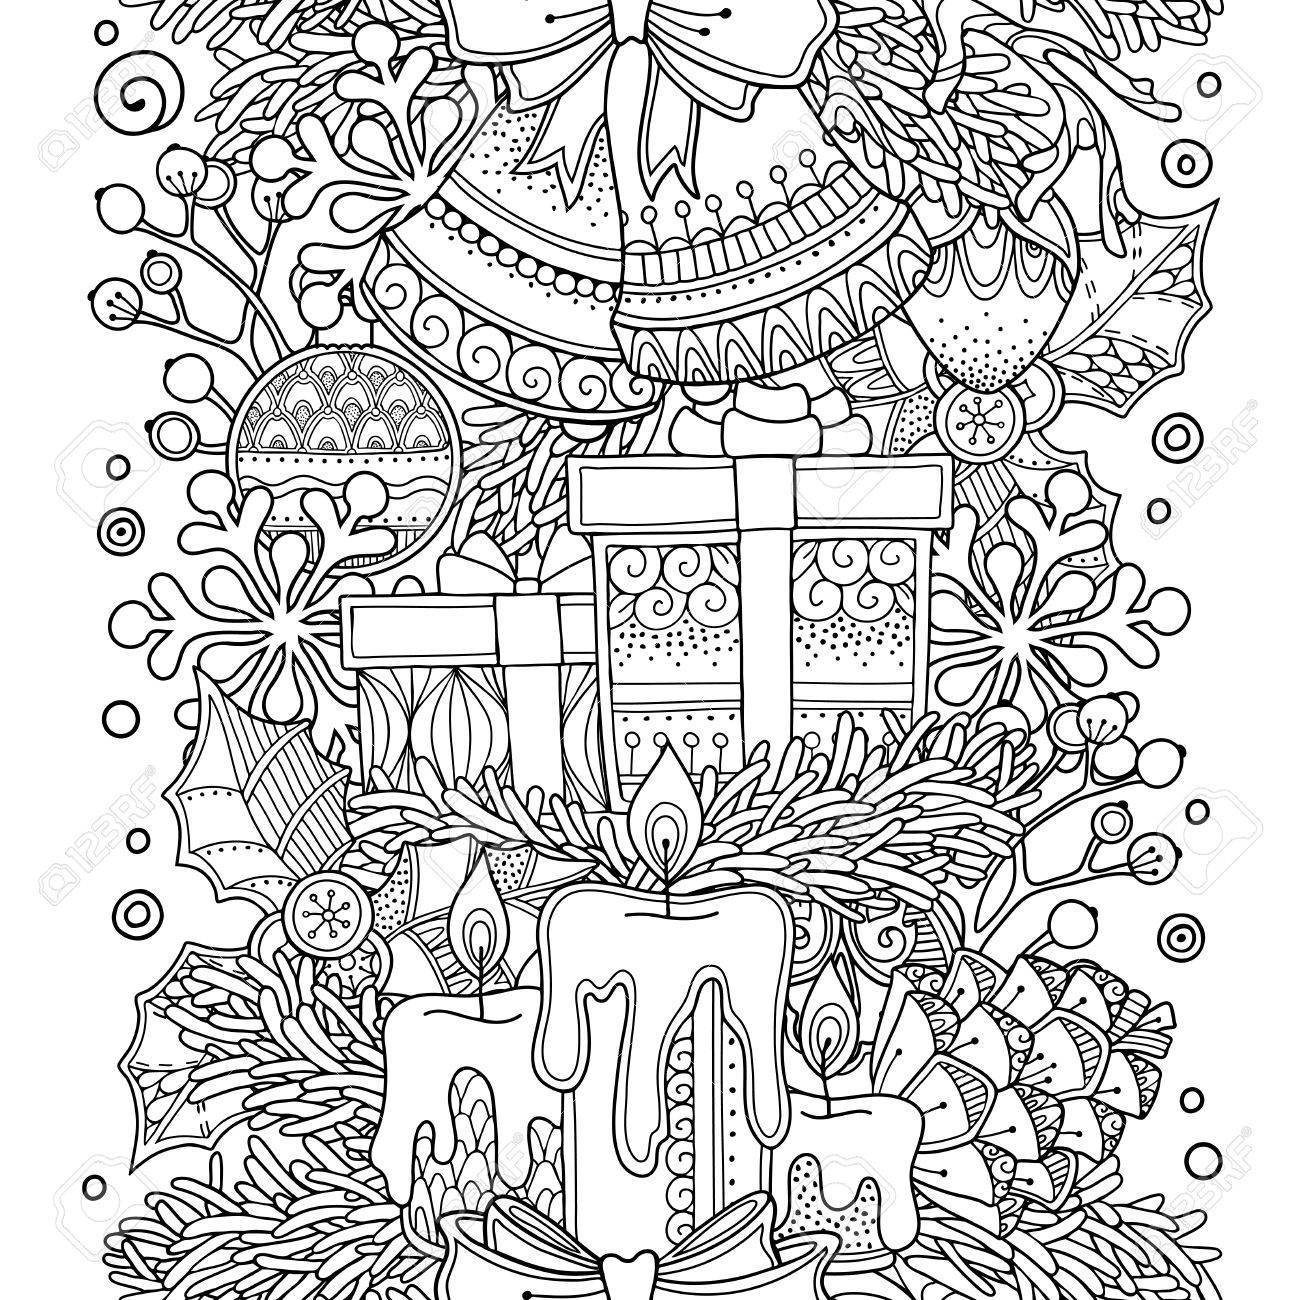 Christmas Seamless Border In Doodle Style Floral Ornate Decorative Tribal Design